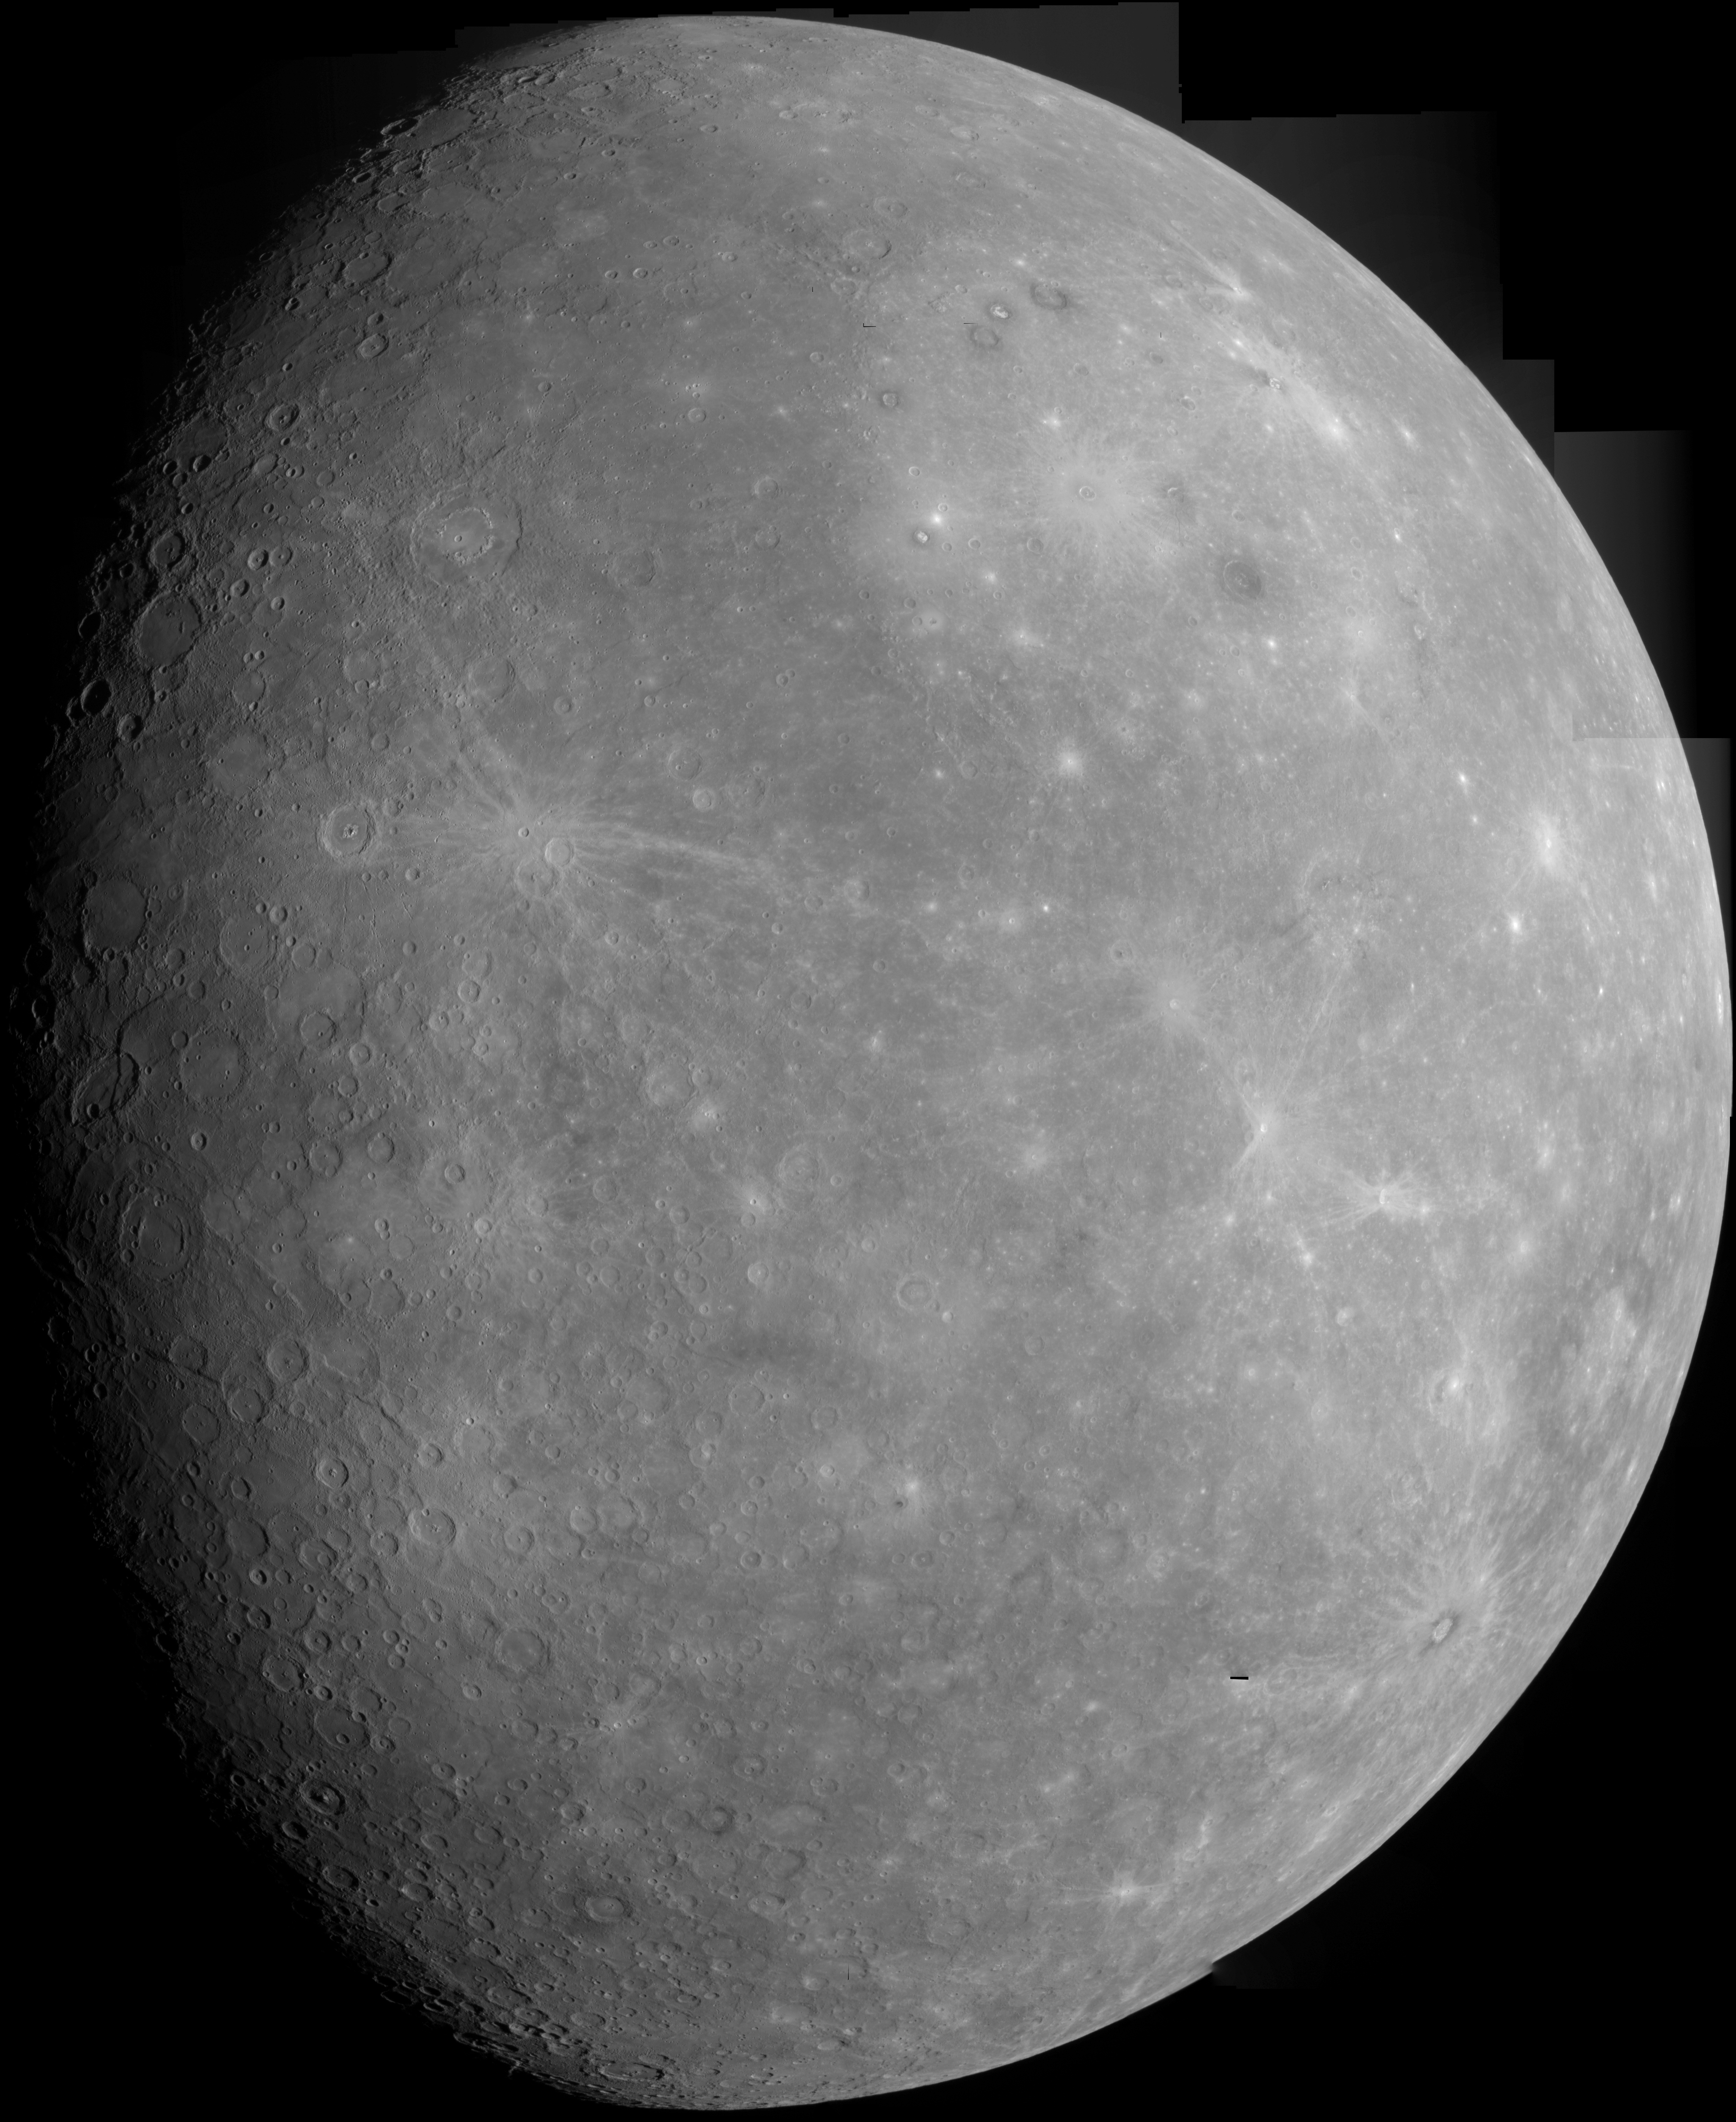 messenger spacecraft mercury discoveries - photo #15